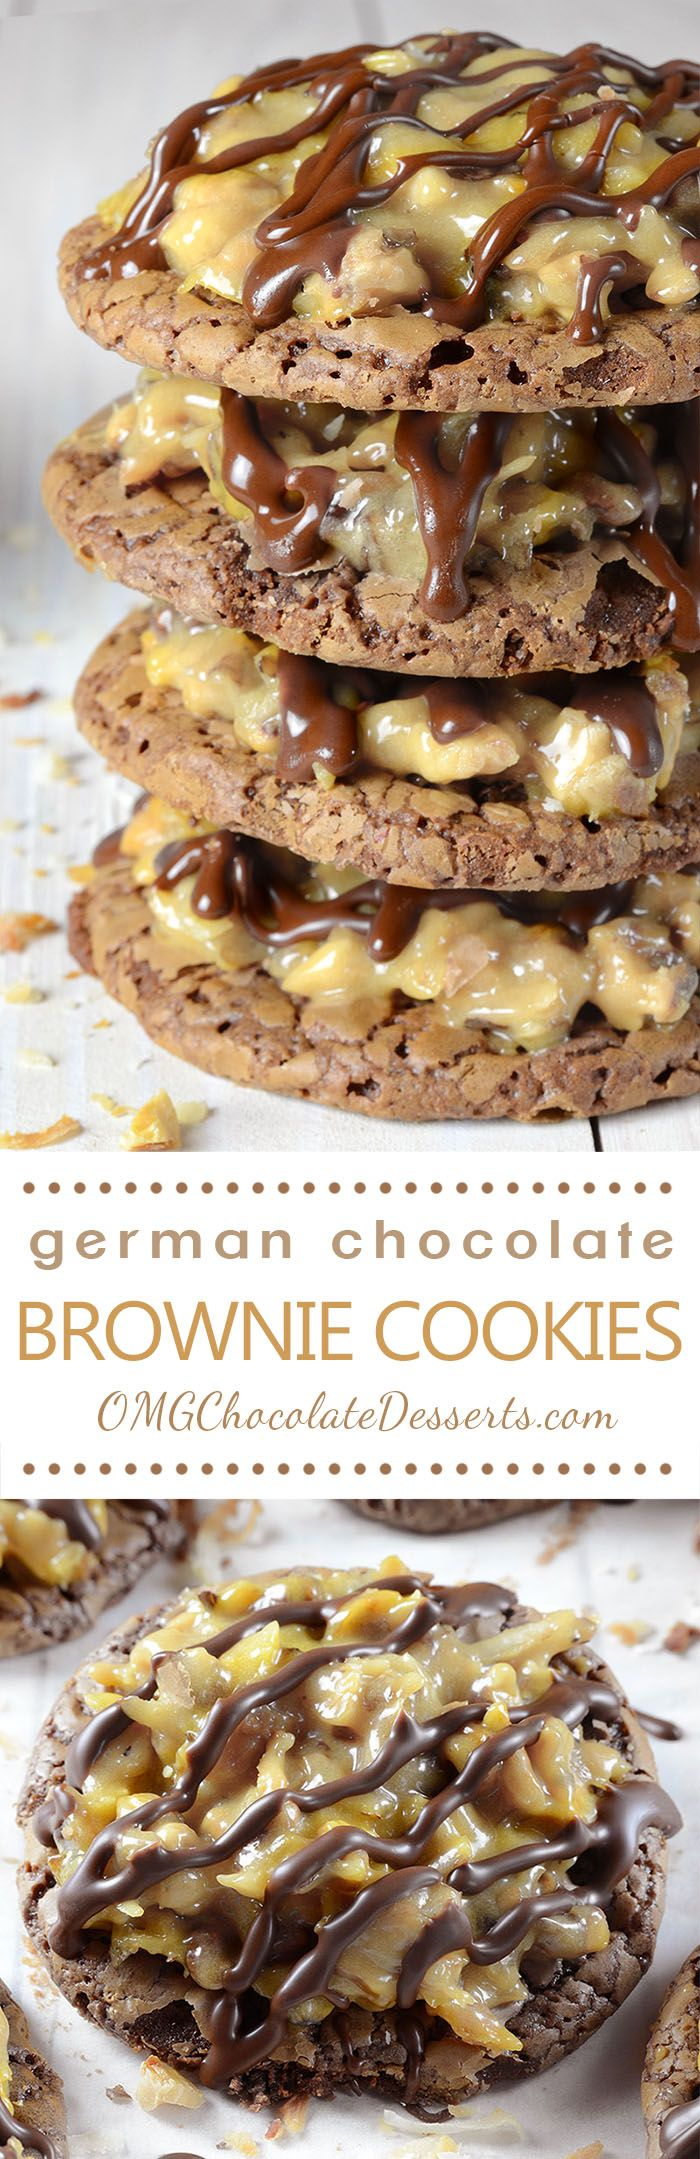 German Chocolate Brownie Cookies